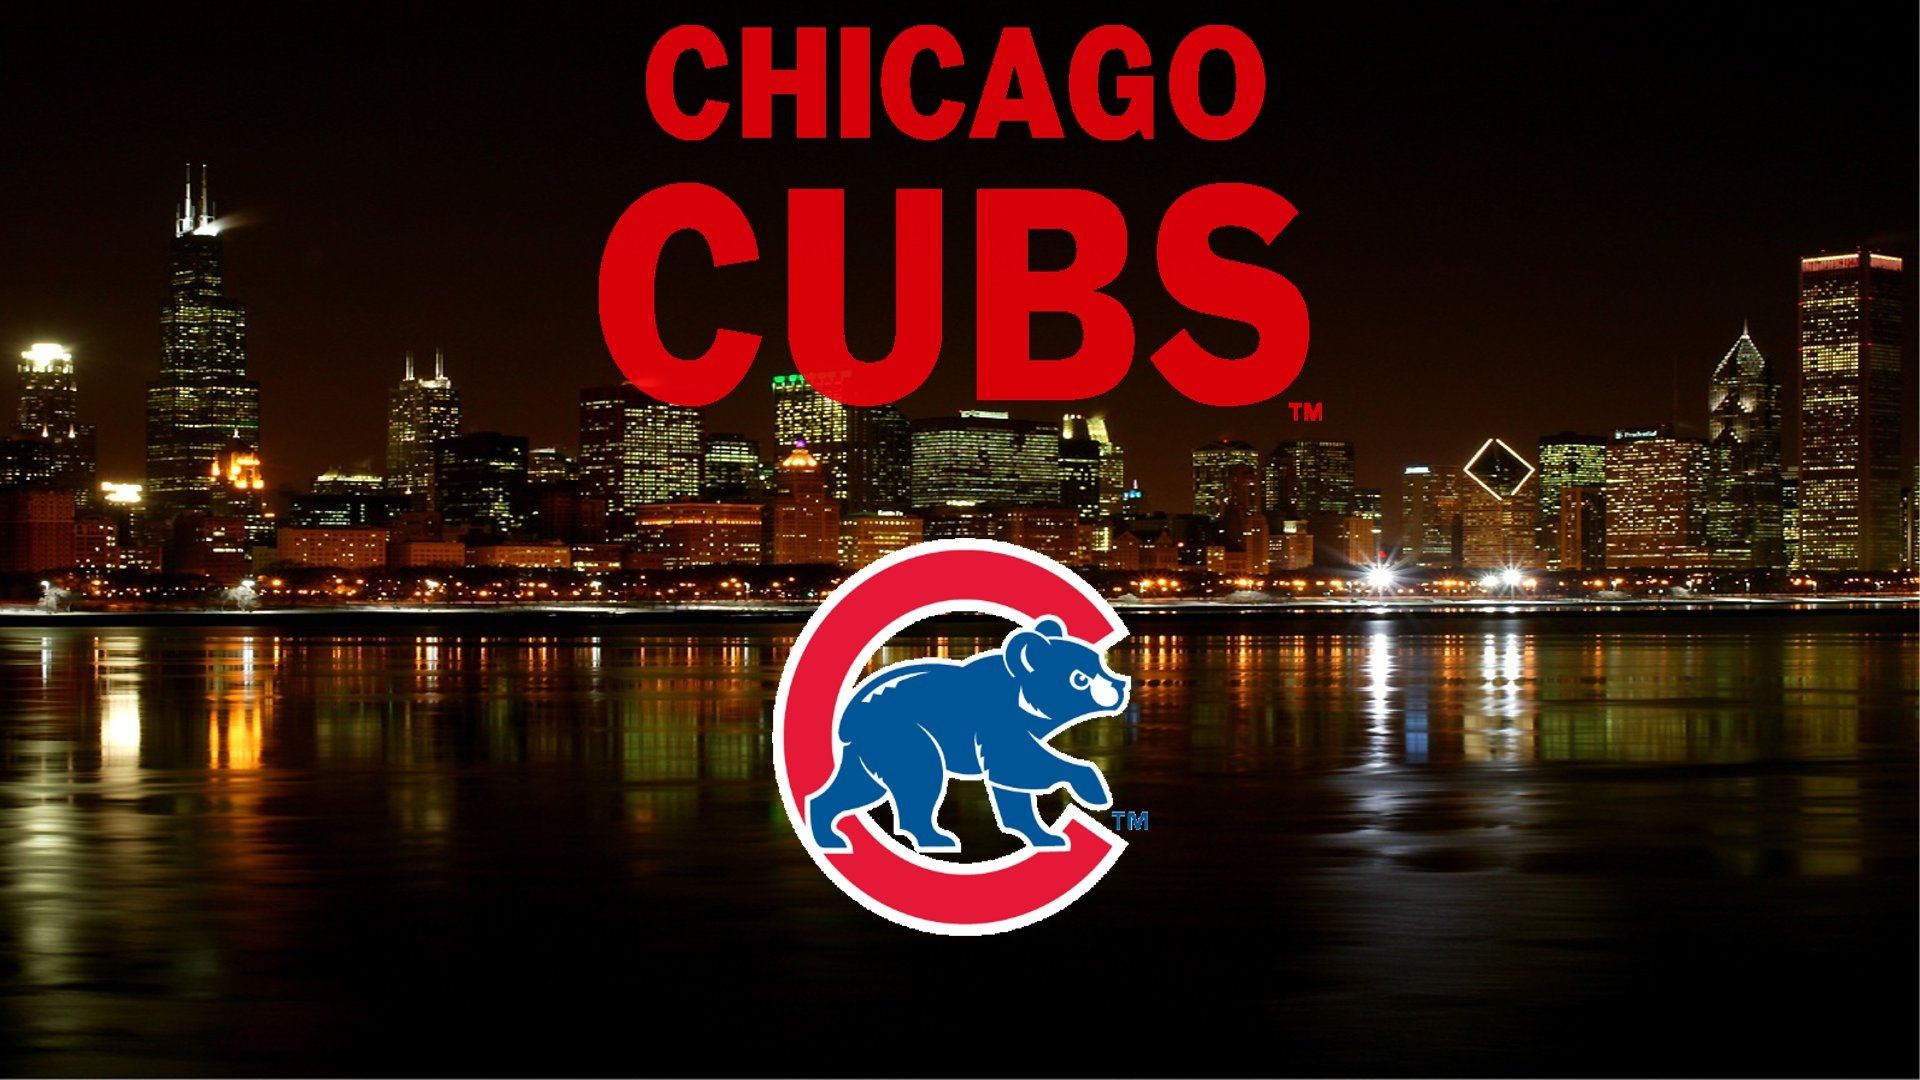 Chicago Cubs Logo City Wallpaper, Where You Can Download - Chicago Cubs Wallpaper 2016 , HD Wallpaper & Backgrounds